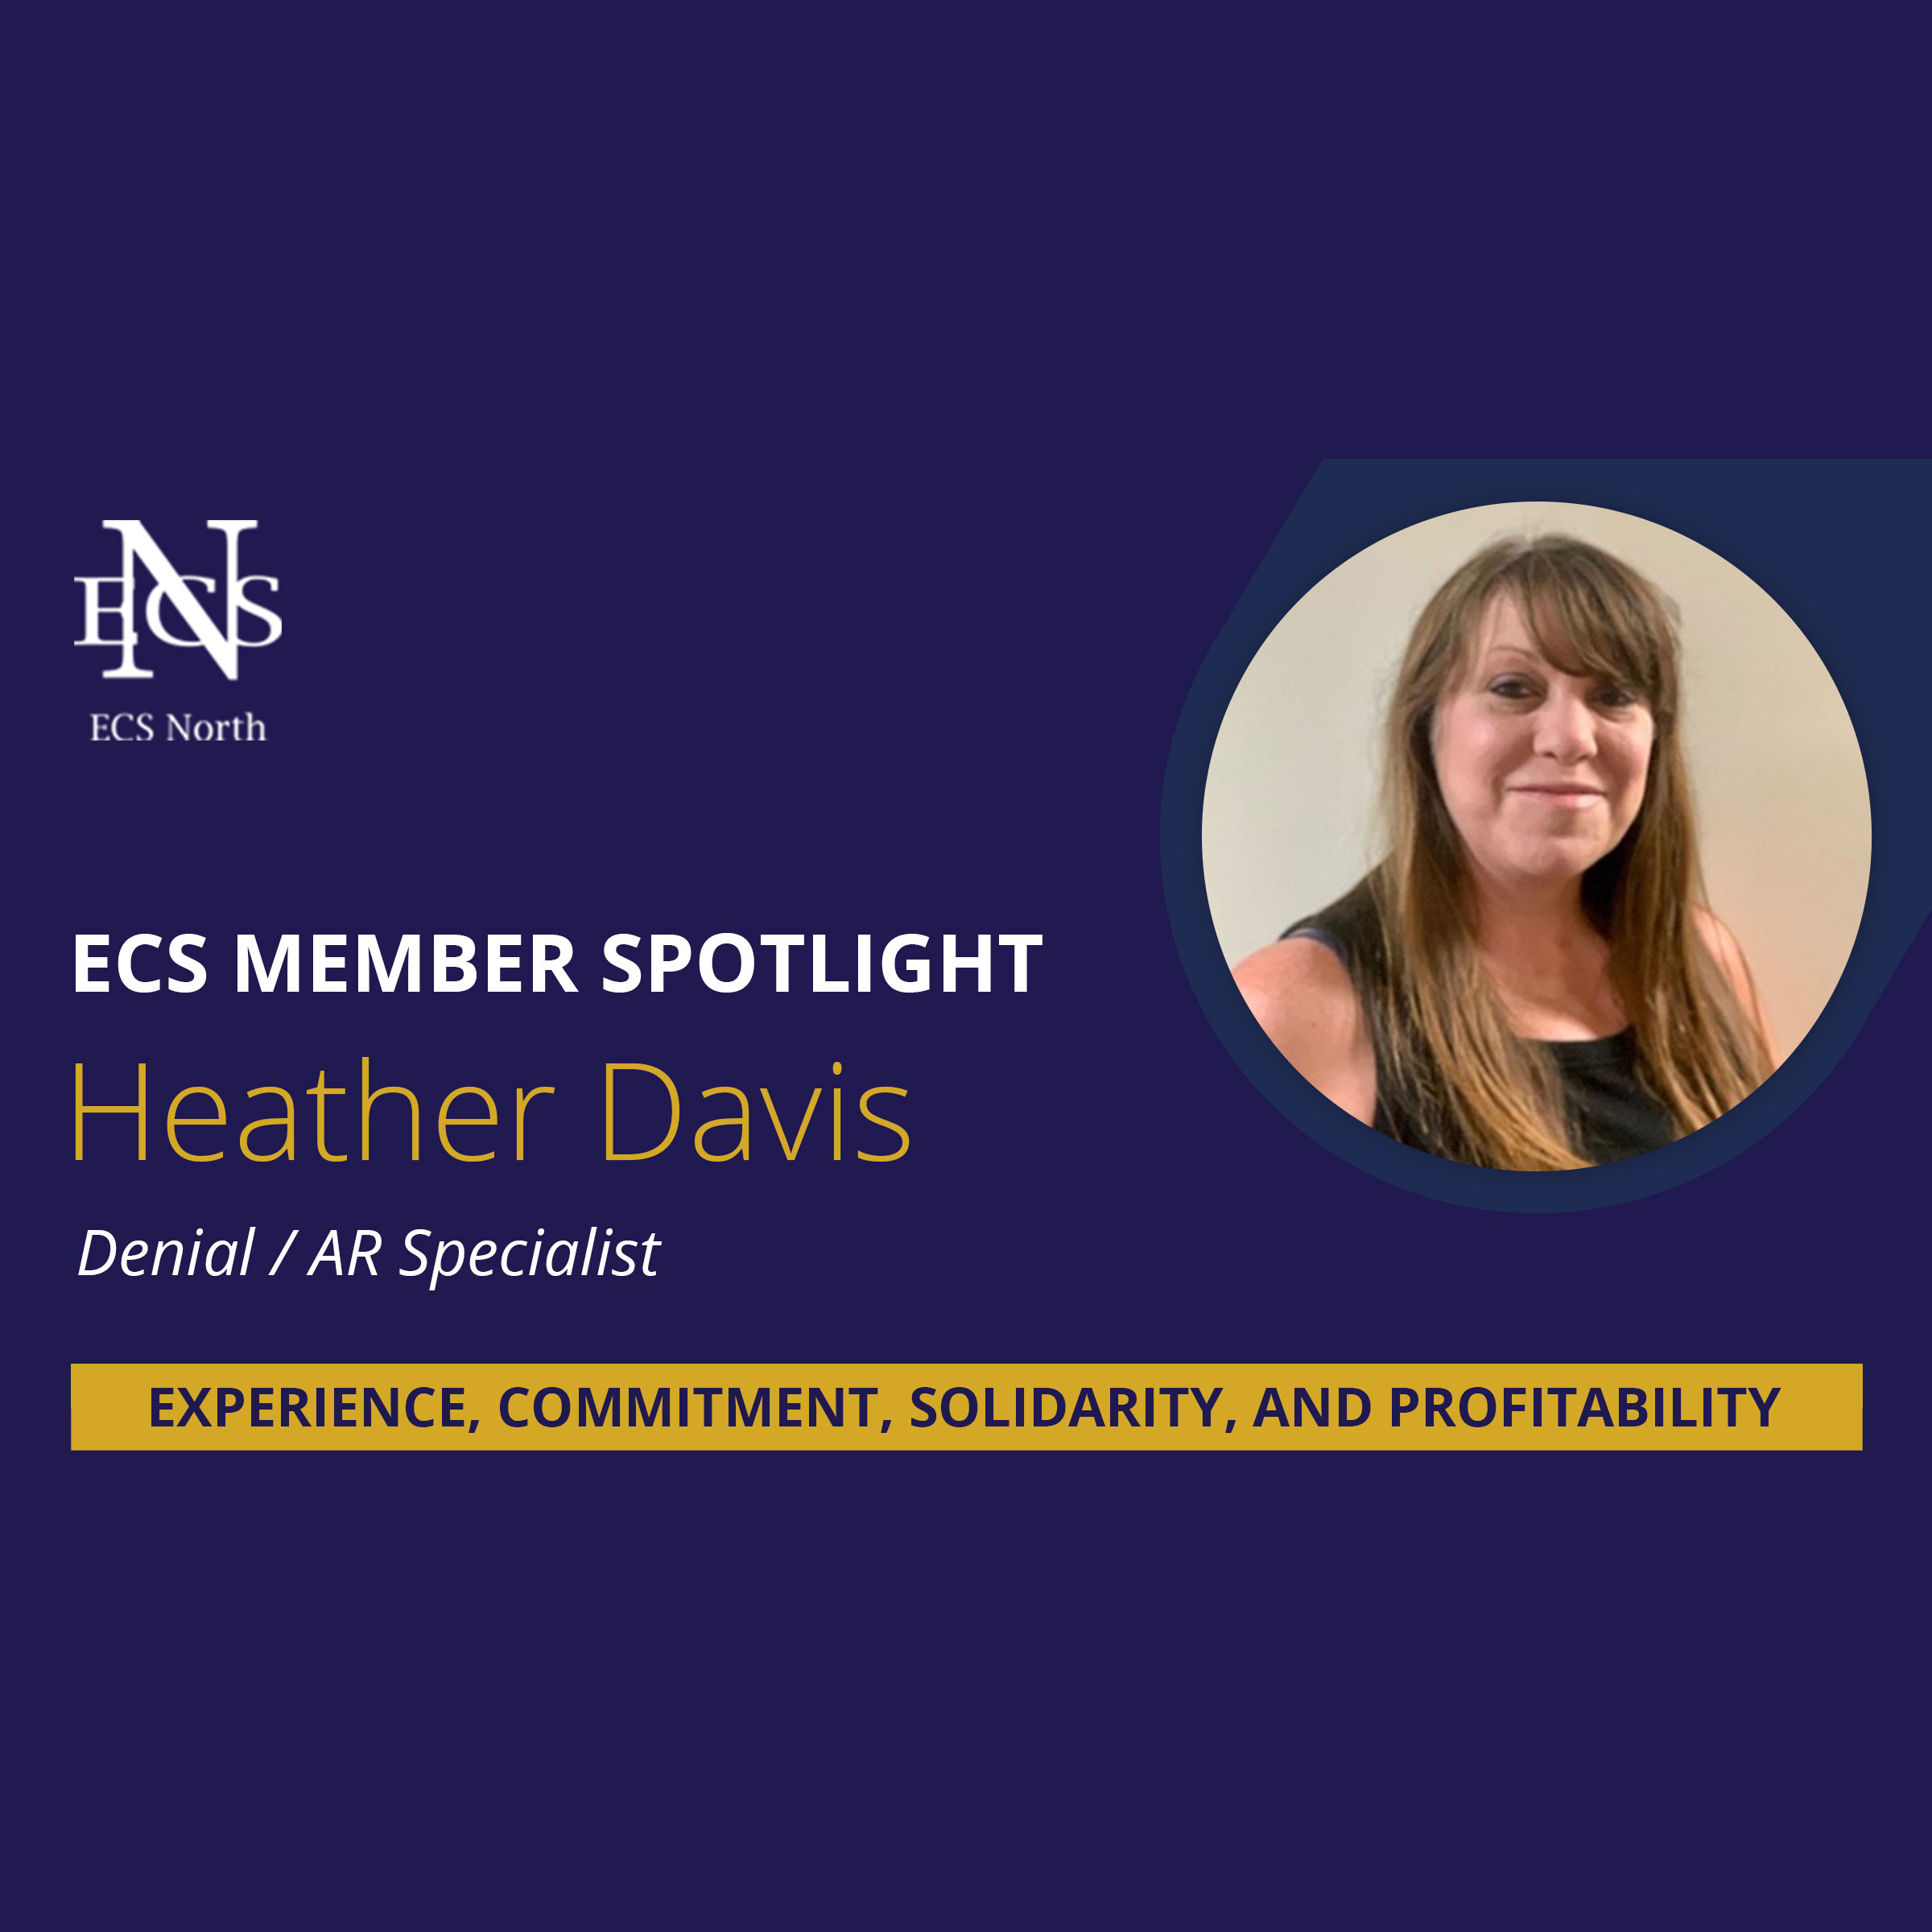 ECS_Member_Spotlight_Heather-Davis